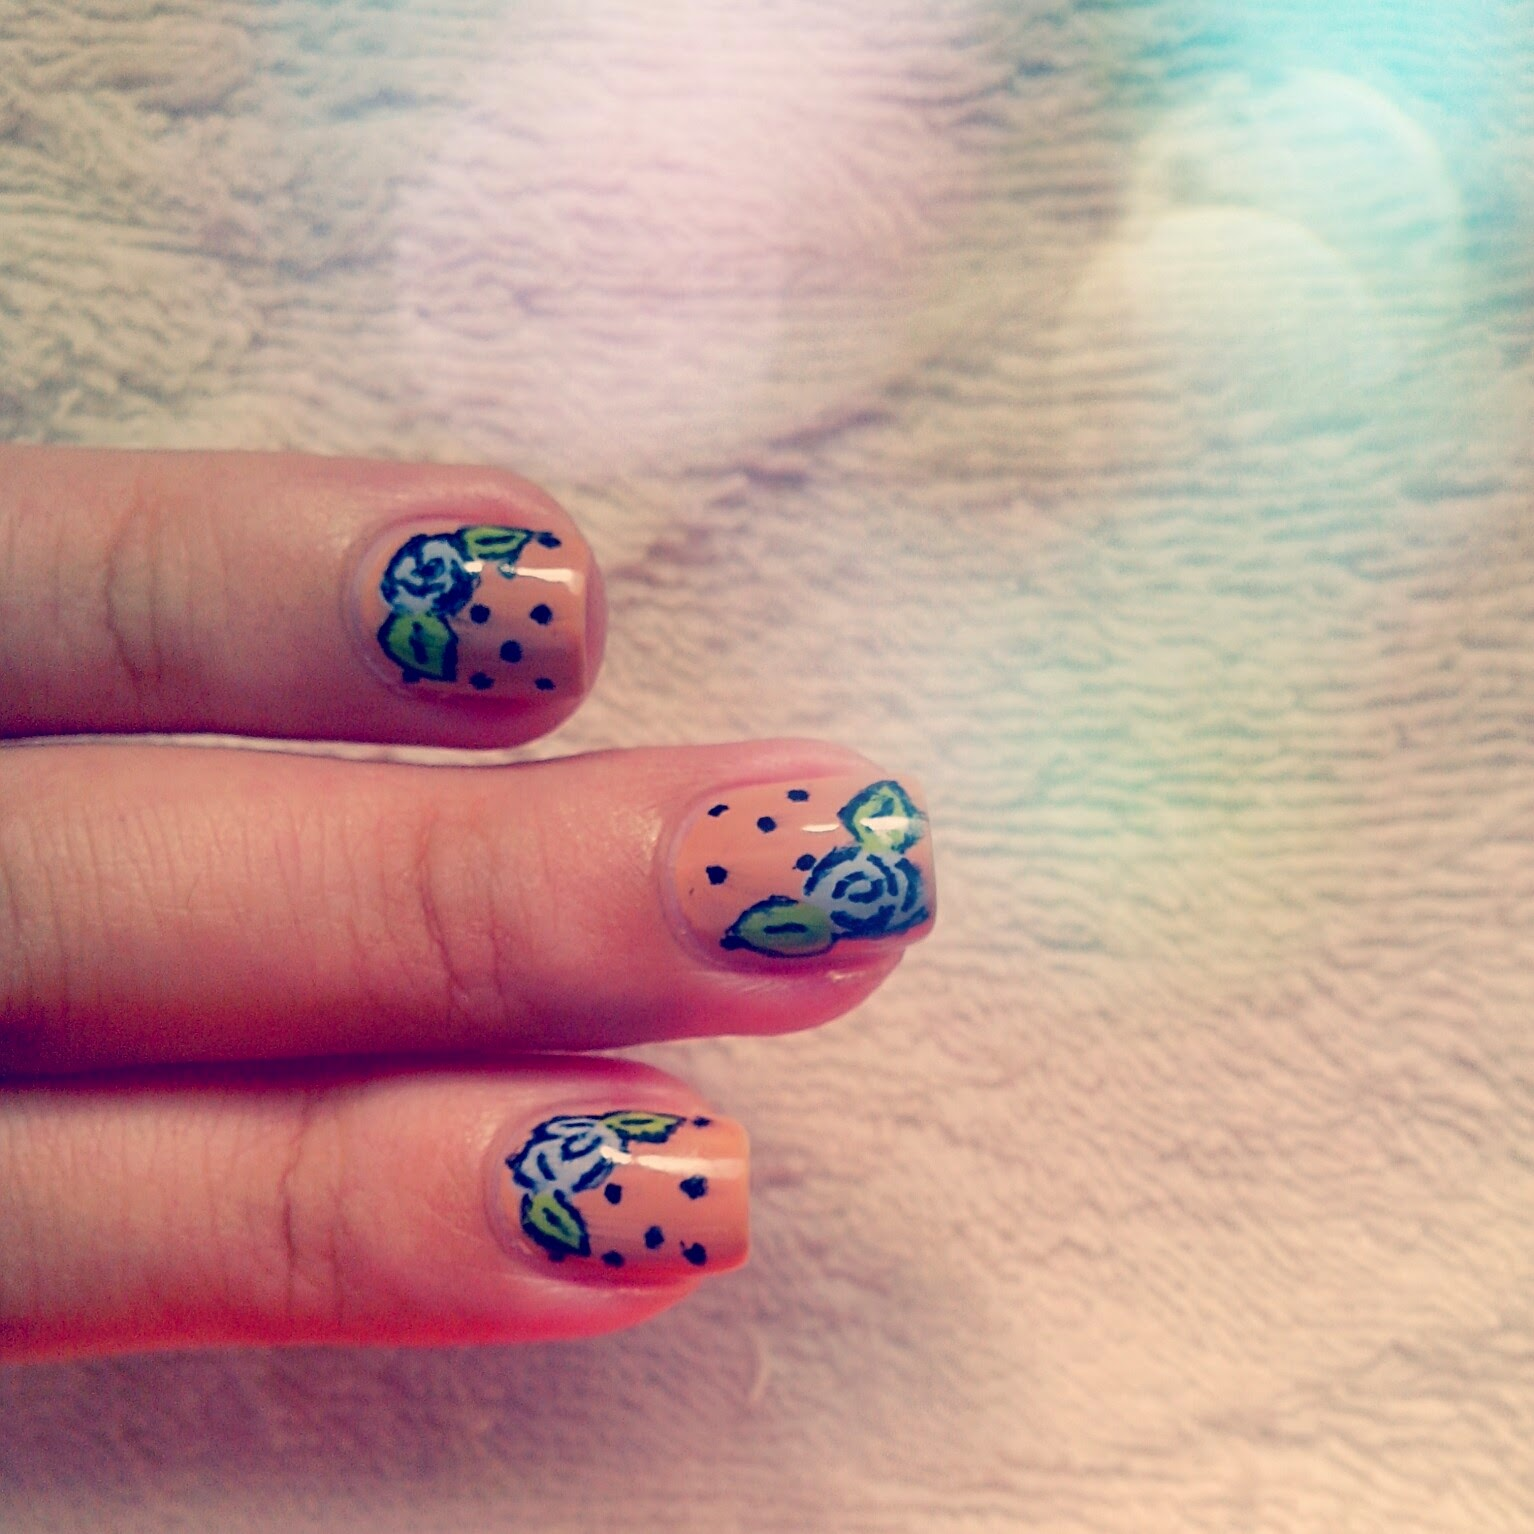 Judys Little Obsessions Nail Art Floral Retro Style